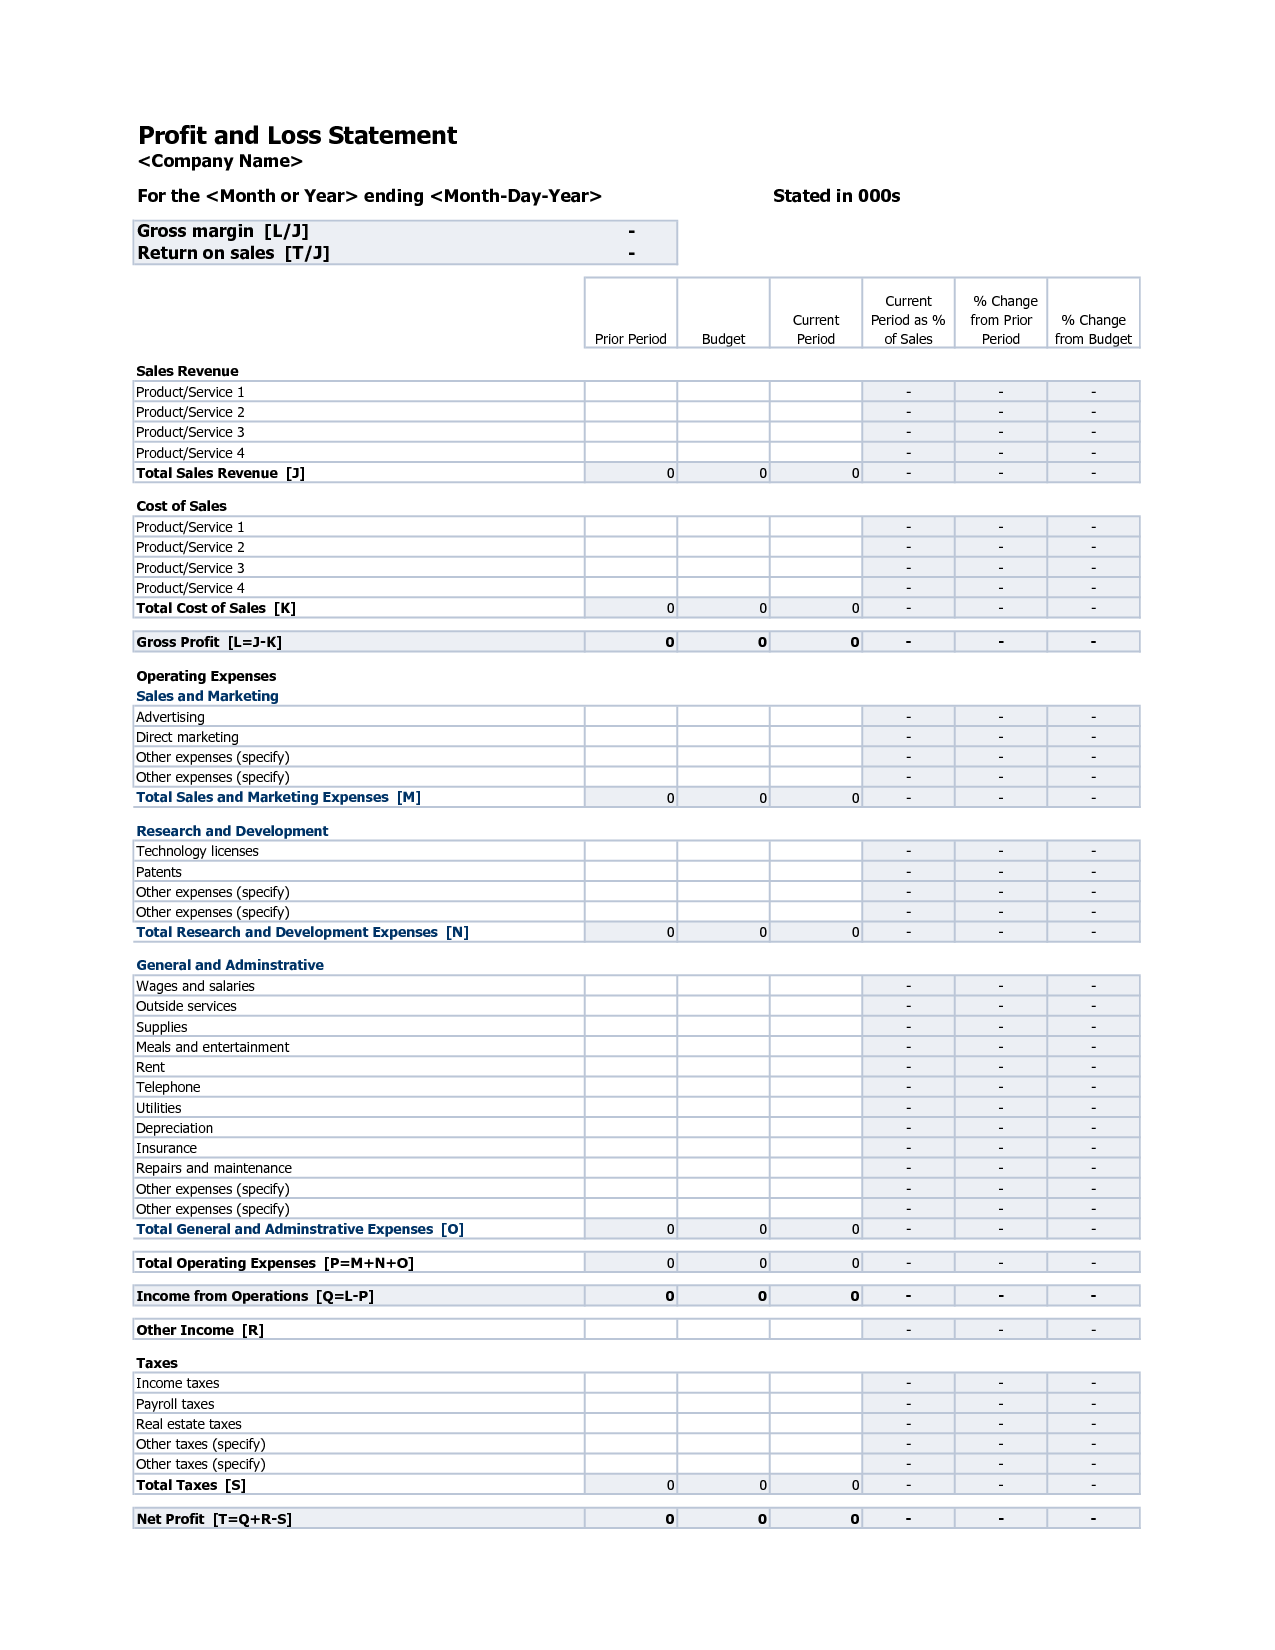 Free Personal Financial Statement Template Download and Profit and Loss Statement Excel Excel Xlsx Templates